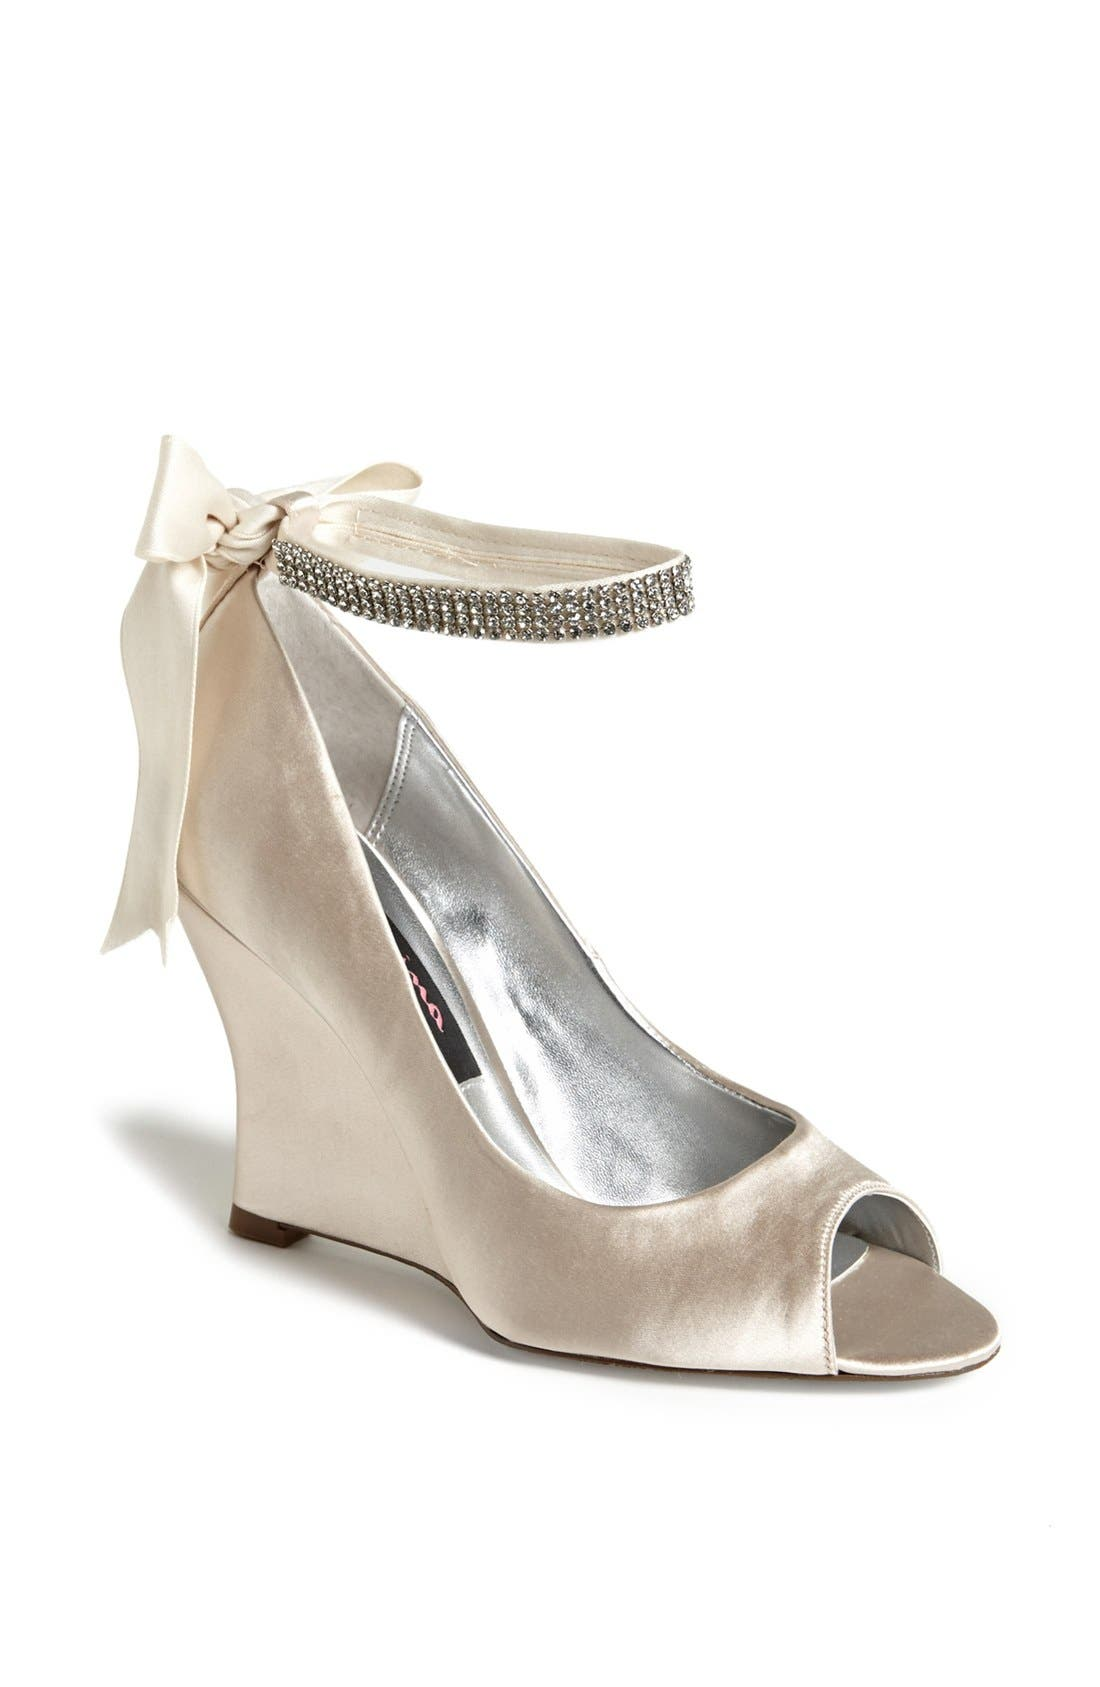 Alternate Image 1 Selected - Nina 'Emma' Crystal Embellished Ankle Strap Pump (Online Only)